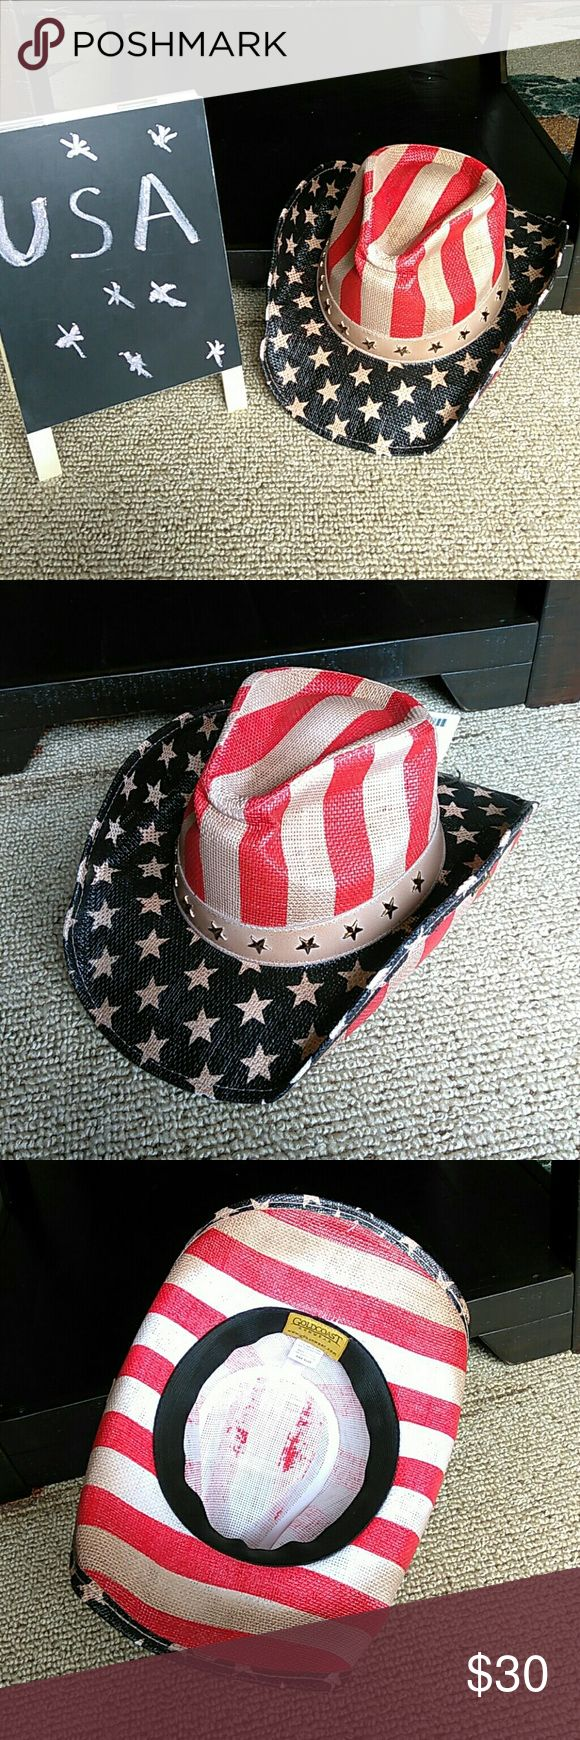 Anerican flag old glory cowboy hat 4th of july New with tags Perfect for 4th of July American patriotism cowgirl hat goldcoast sunwear Accessories Hats